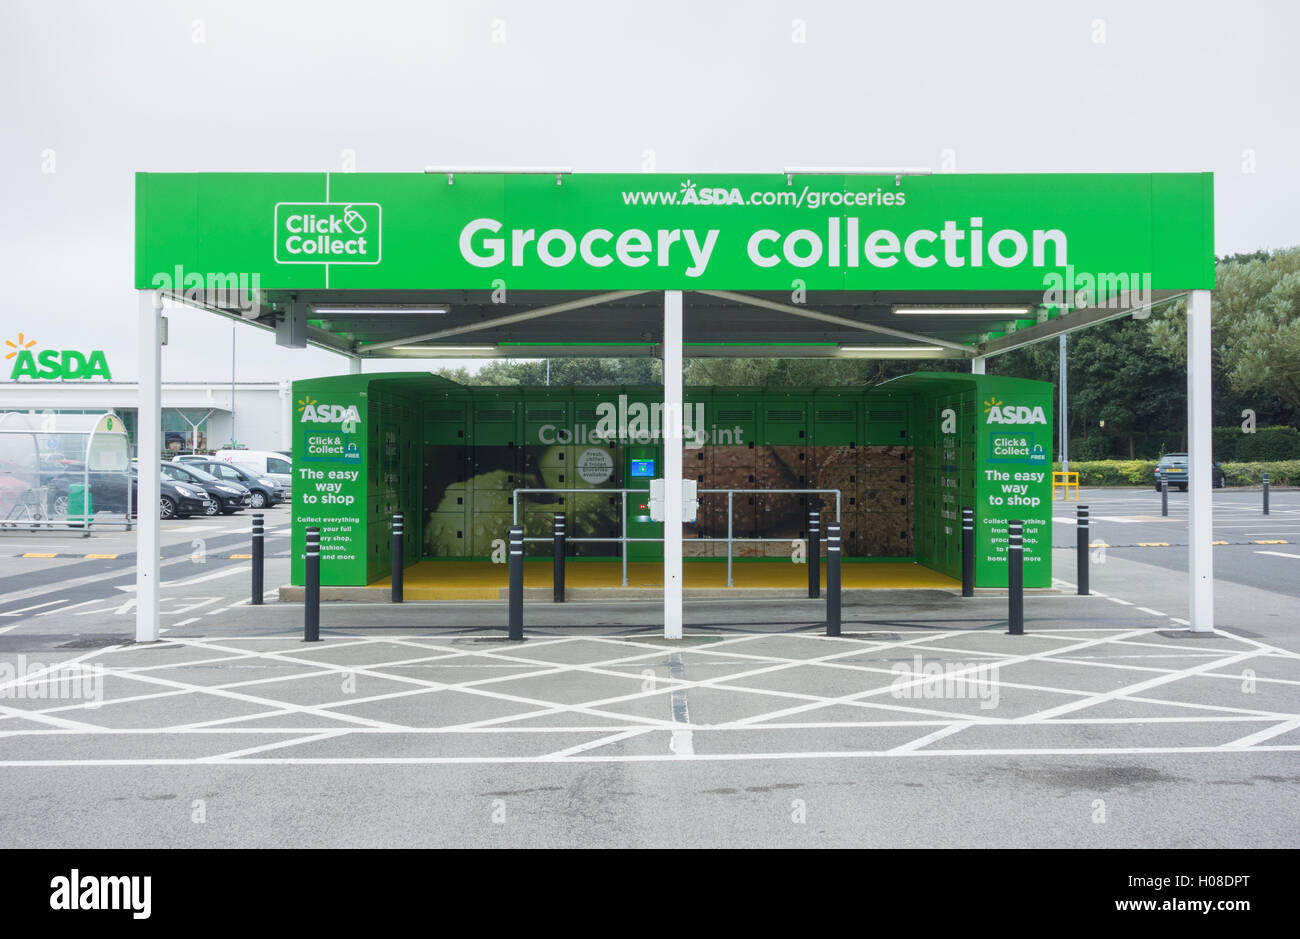 click and collect grocery collection point in asda store car park stock photo royalty free. Black Bedroom Furniture Sets. Home Design Ideas